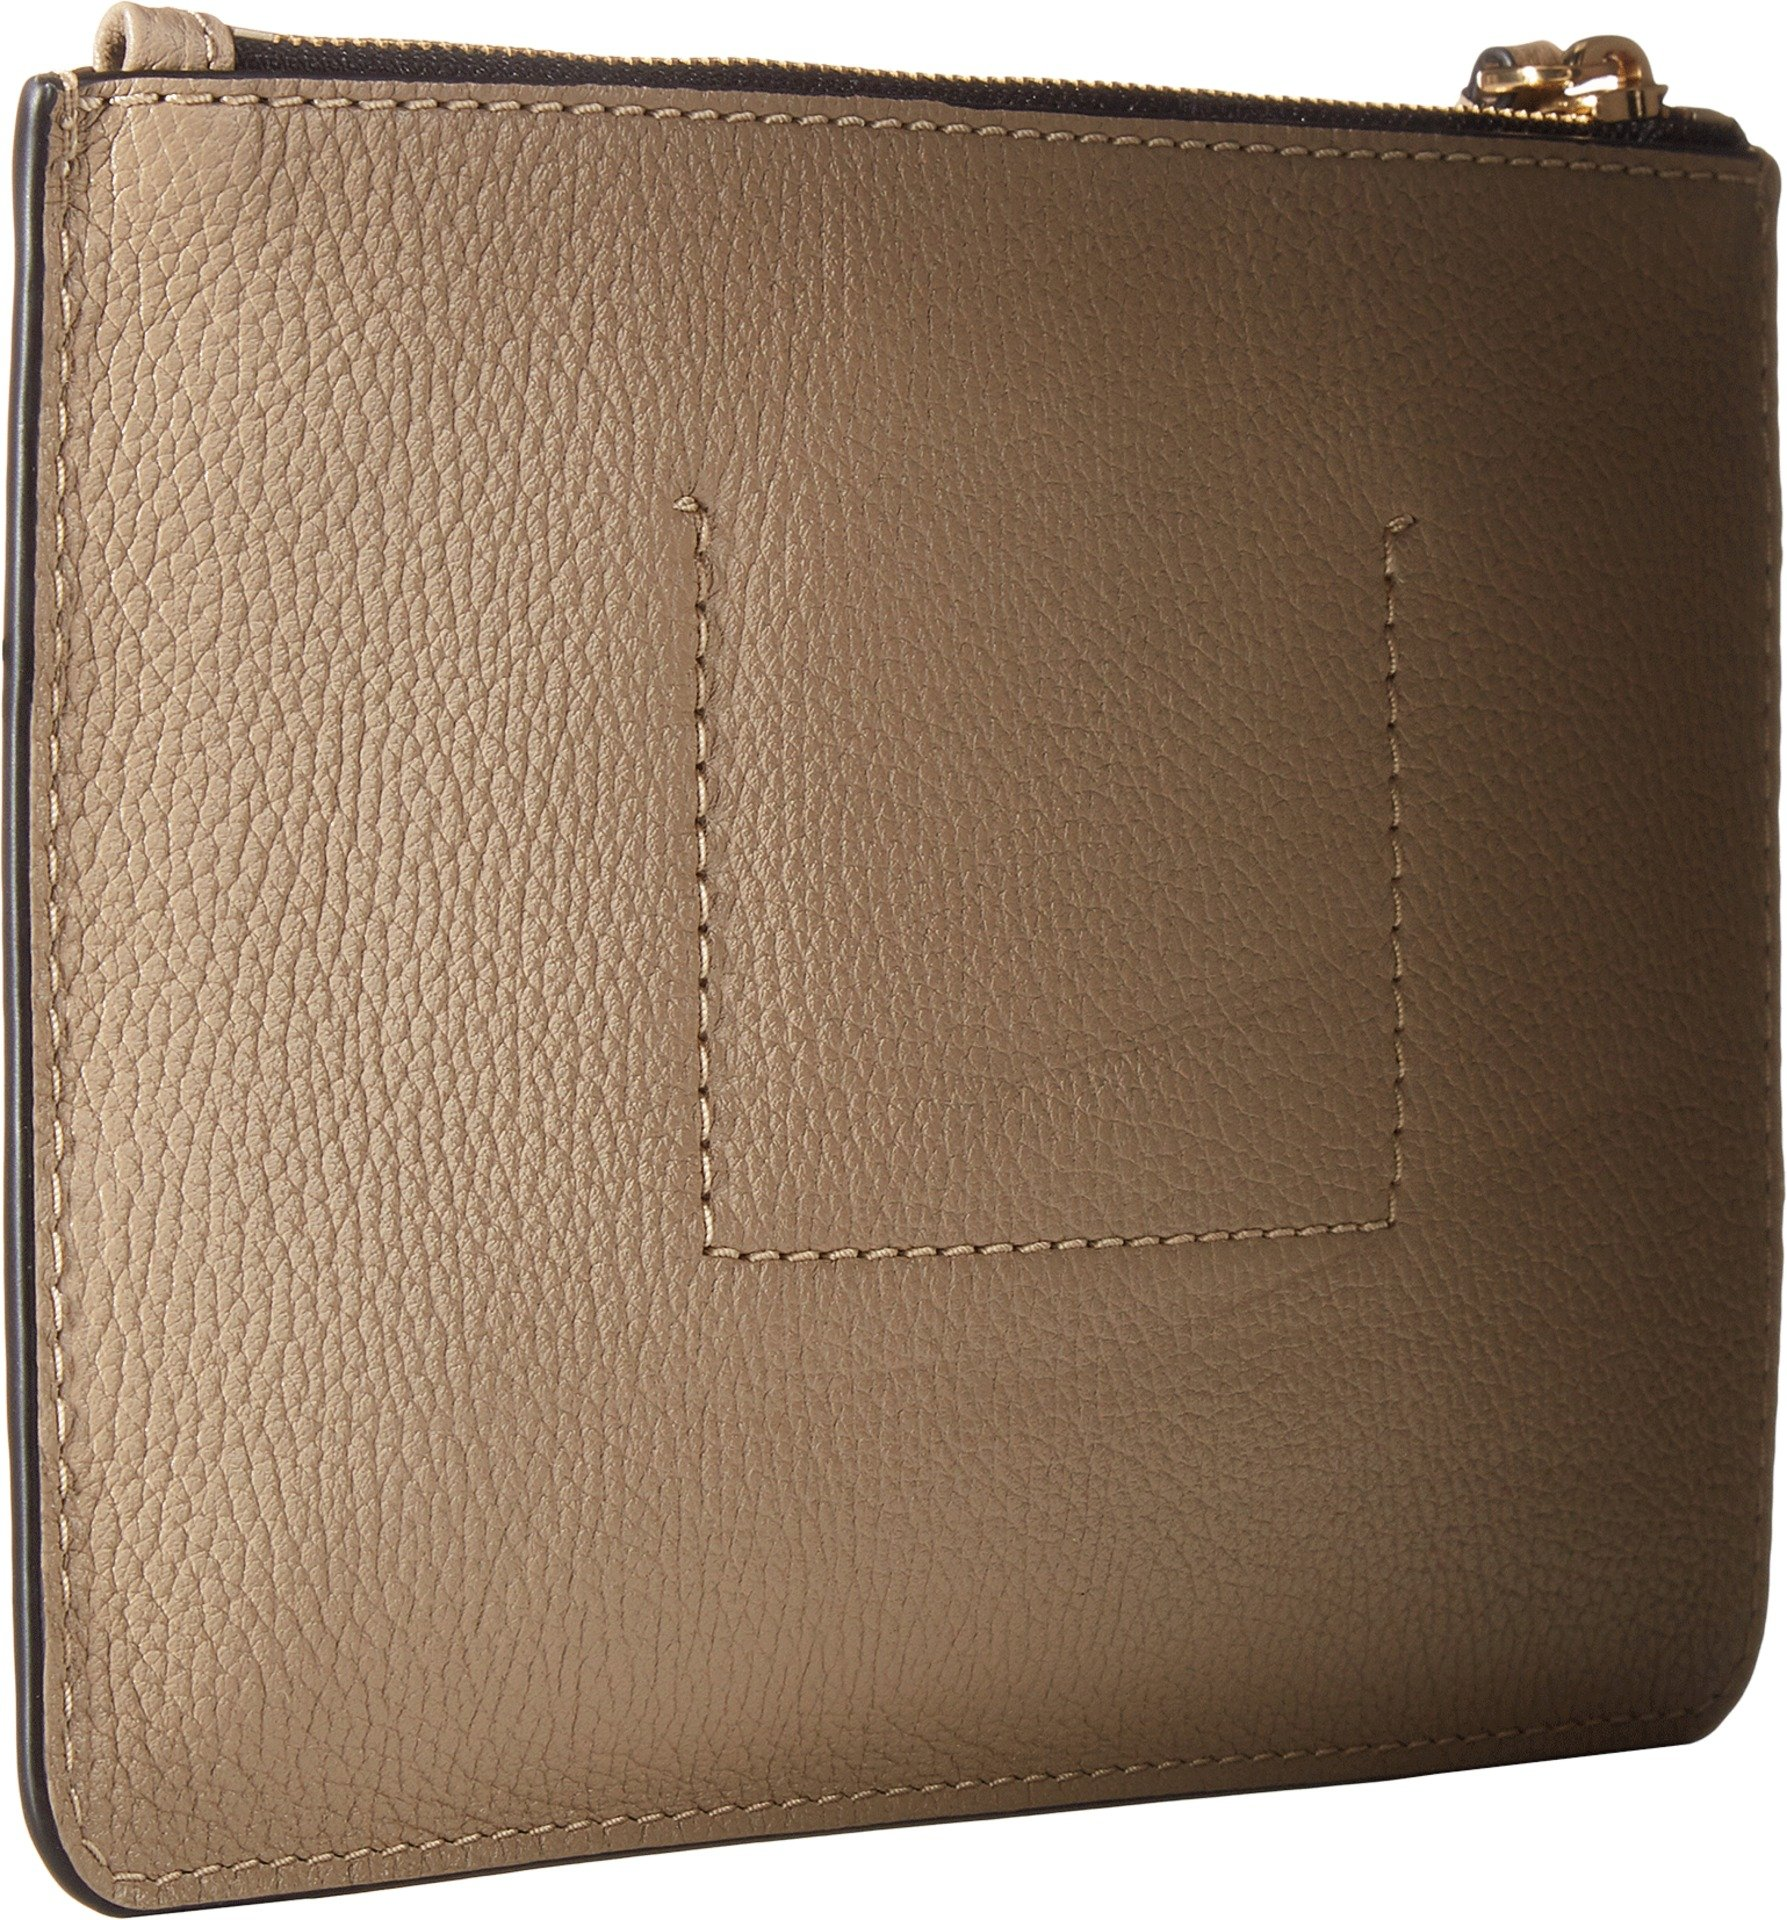 Marc Jacobs Women's The Grind Medium Pouch Light Slate One Size by Marc Jacobs (Image #2)